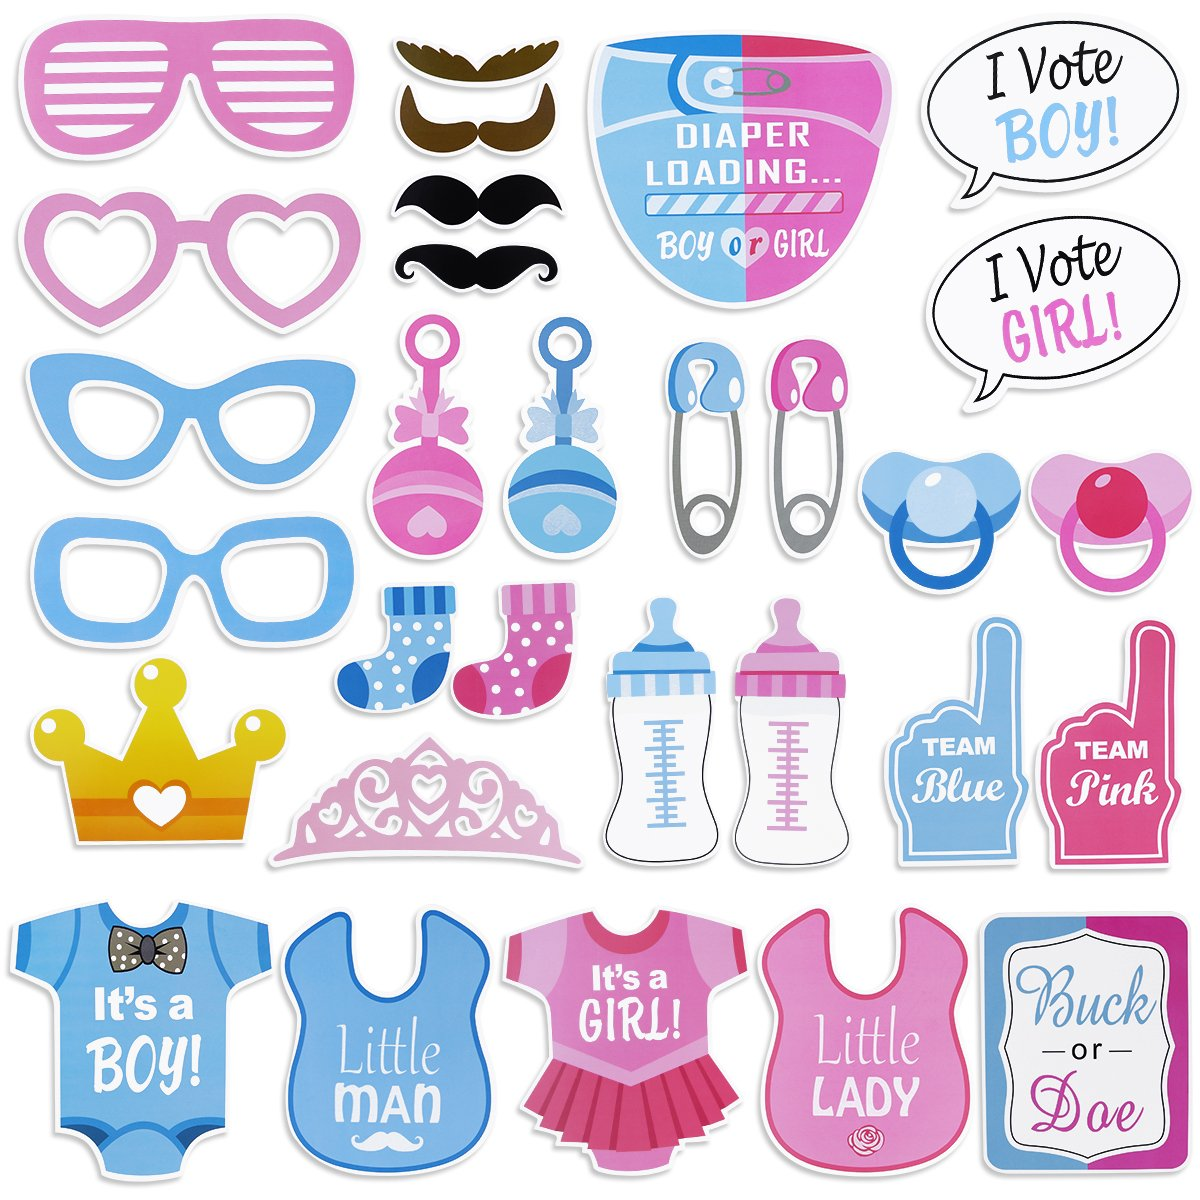 Tinksky Girls Boys Baby Shower Birthday Party Gender Reveal Photo Booth Props on Sticks Set Decorations